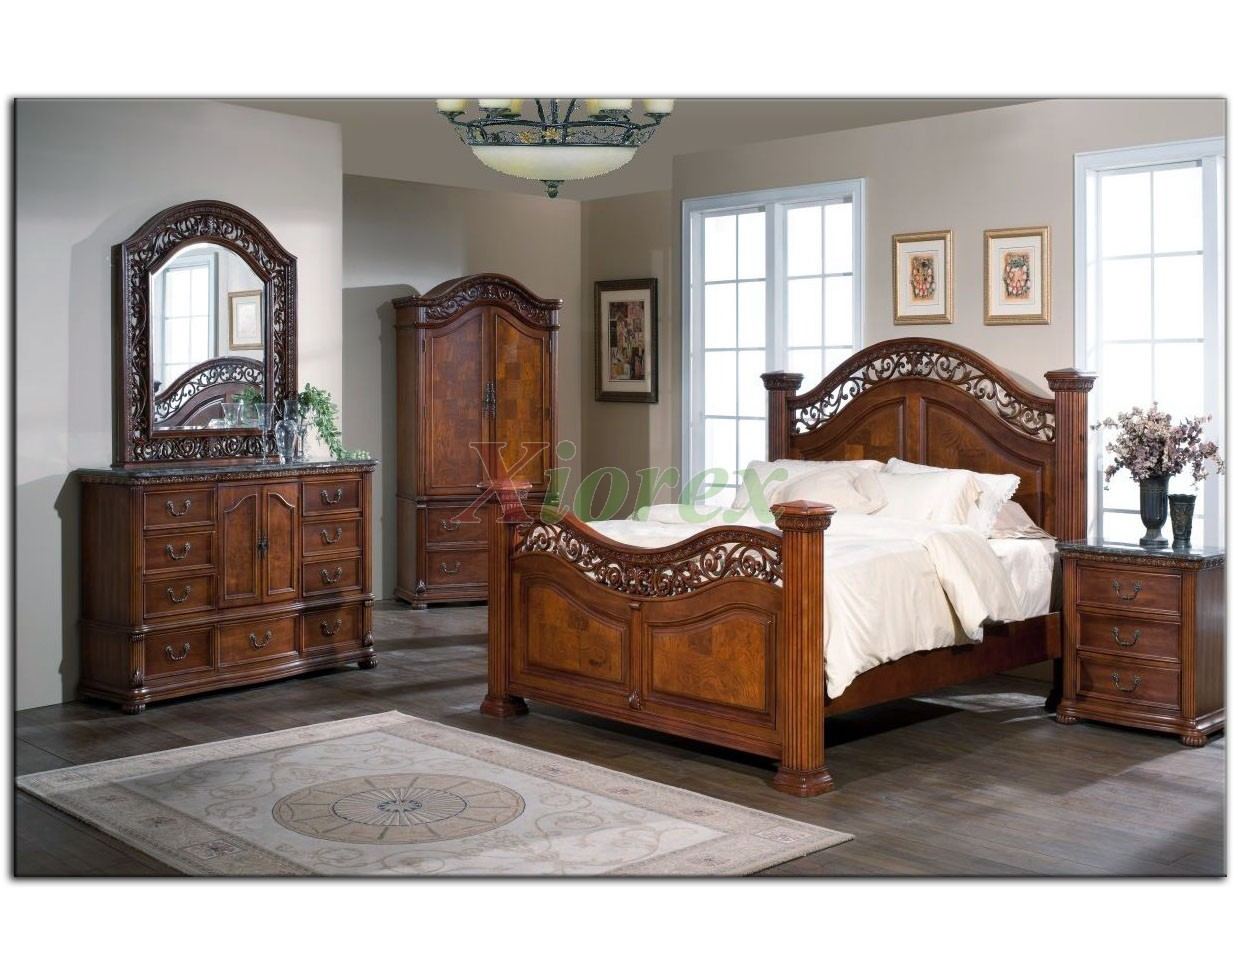 Poster bedroom furniture set 114 xiorex for Furniture bedroom sets